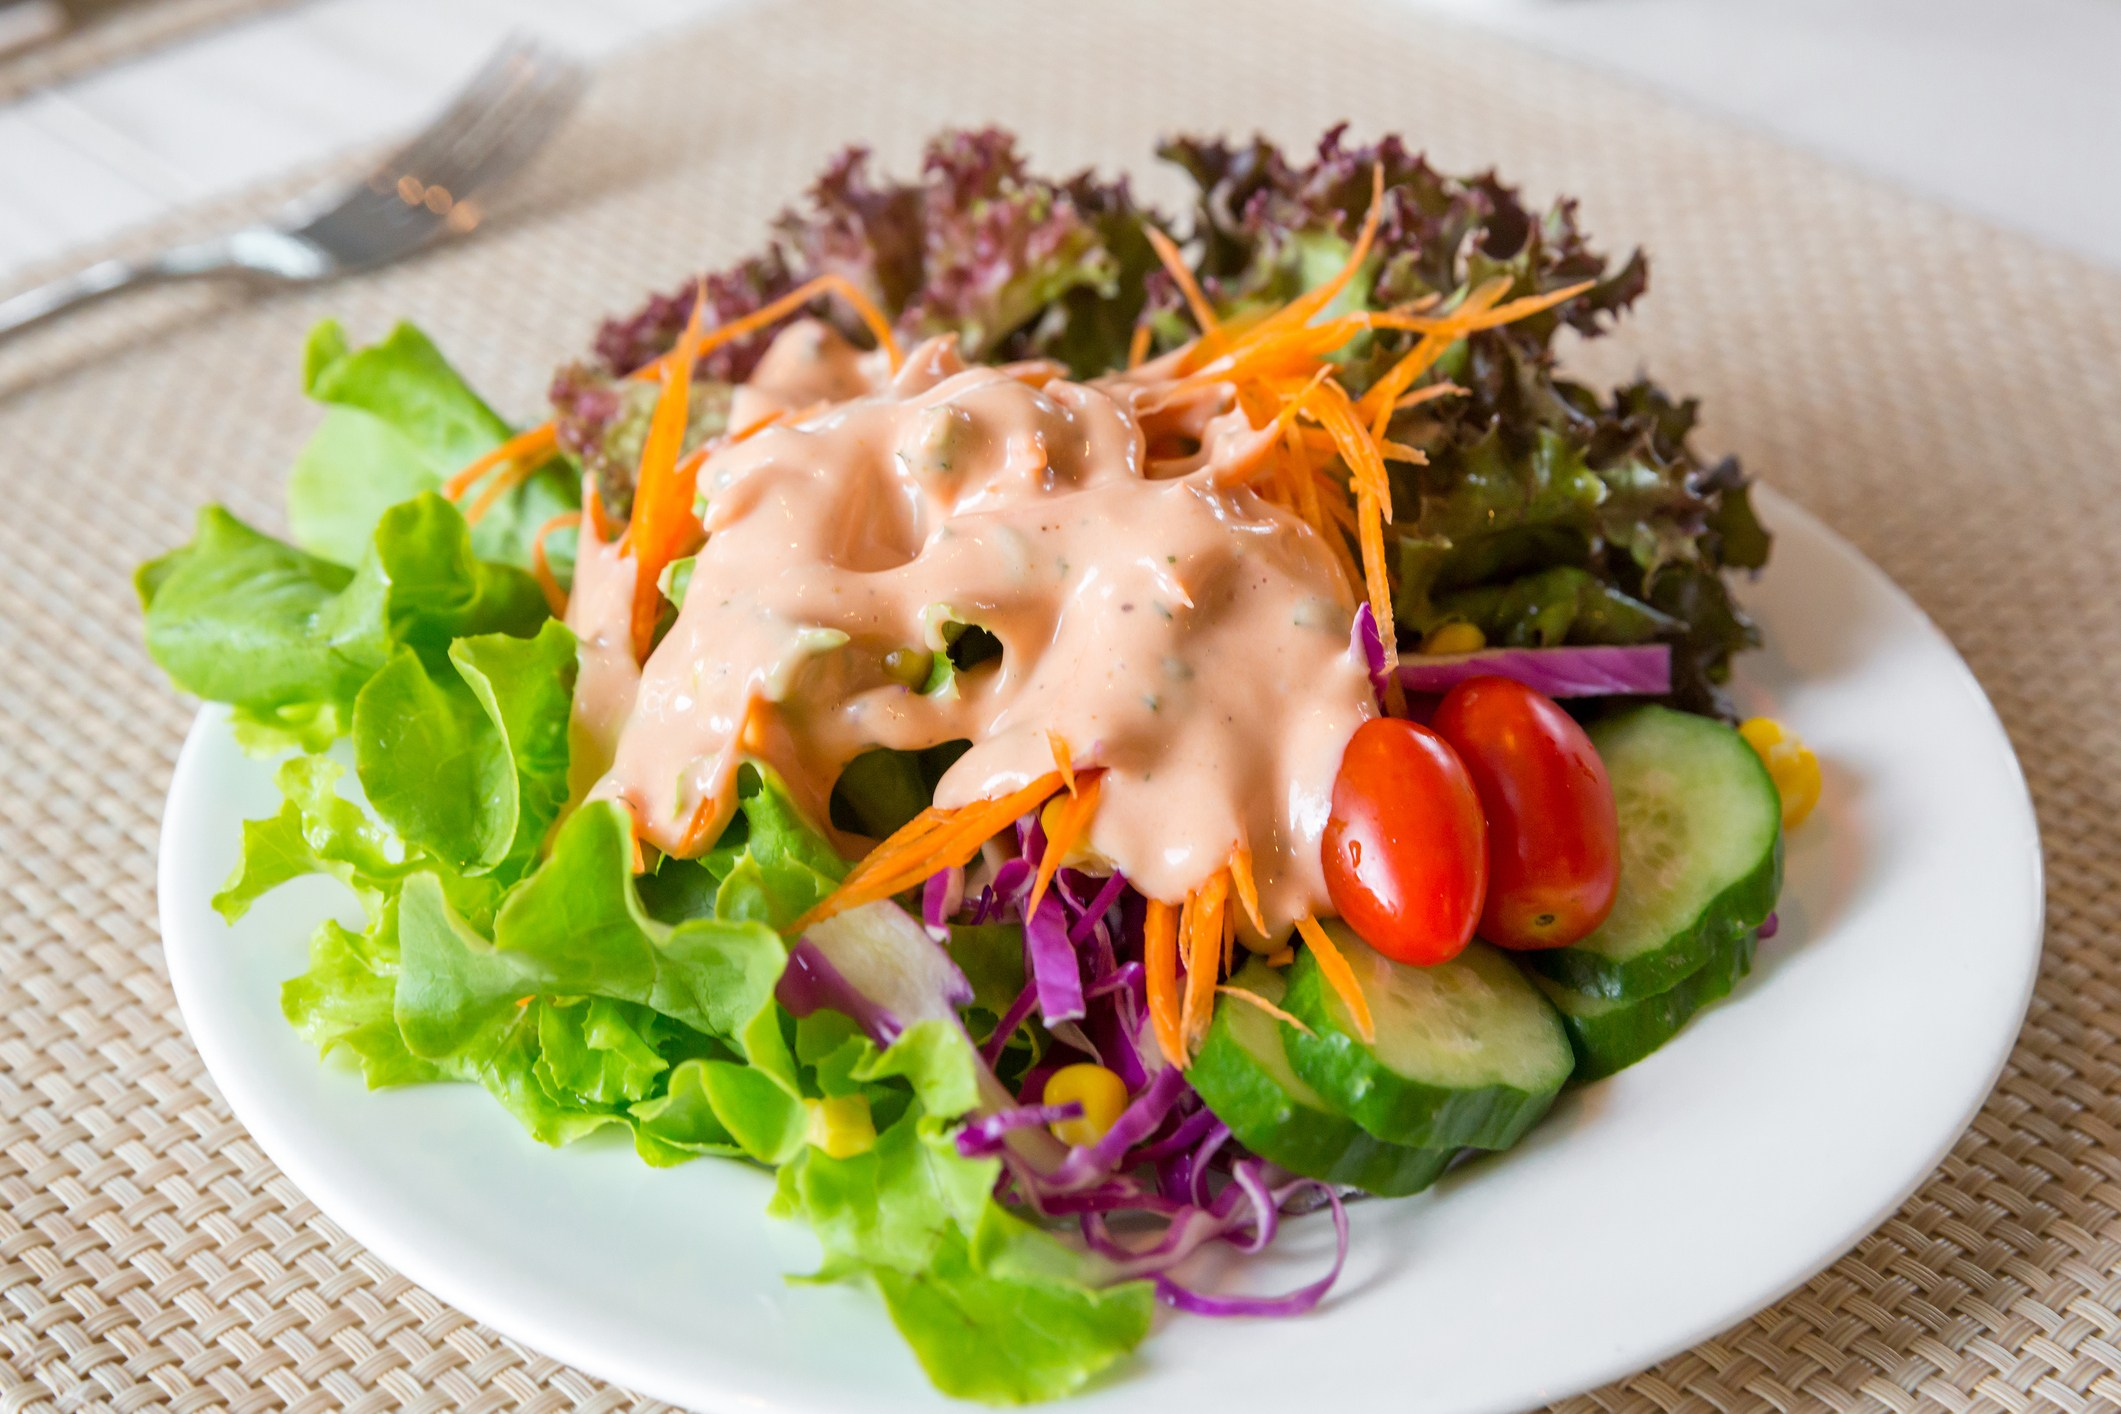 Salad with russian or thousand island dressing